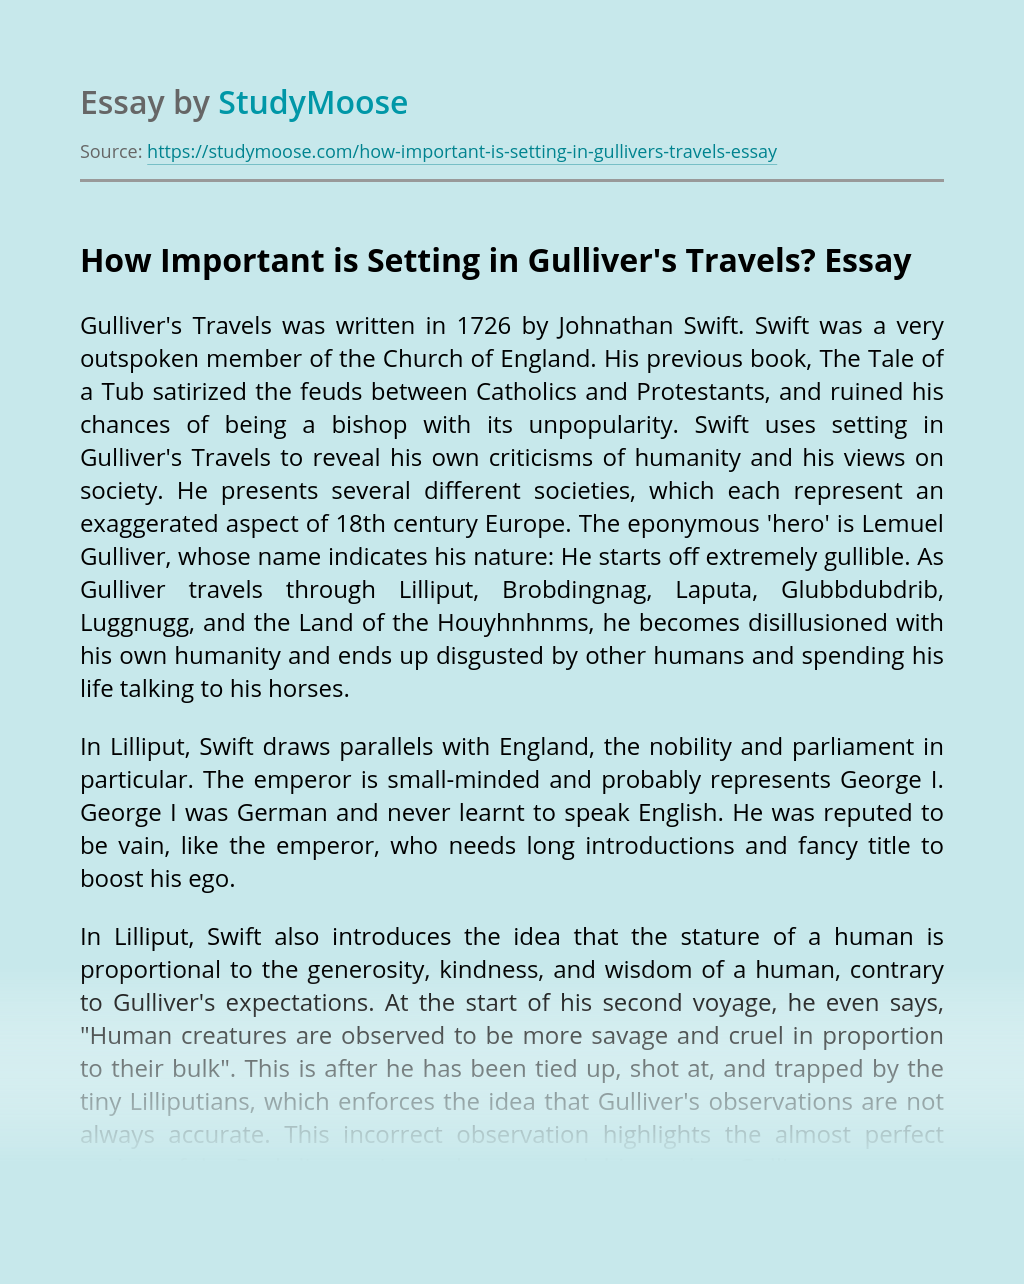 How Important is Setting in Gulliver's Travels?